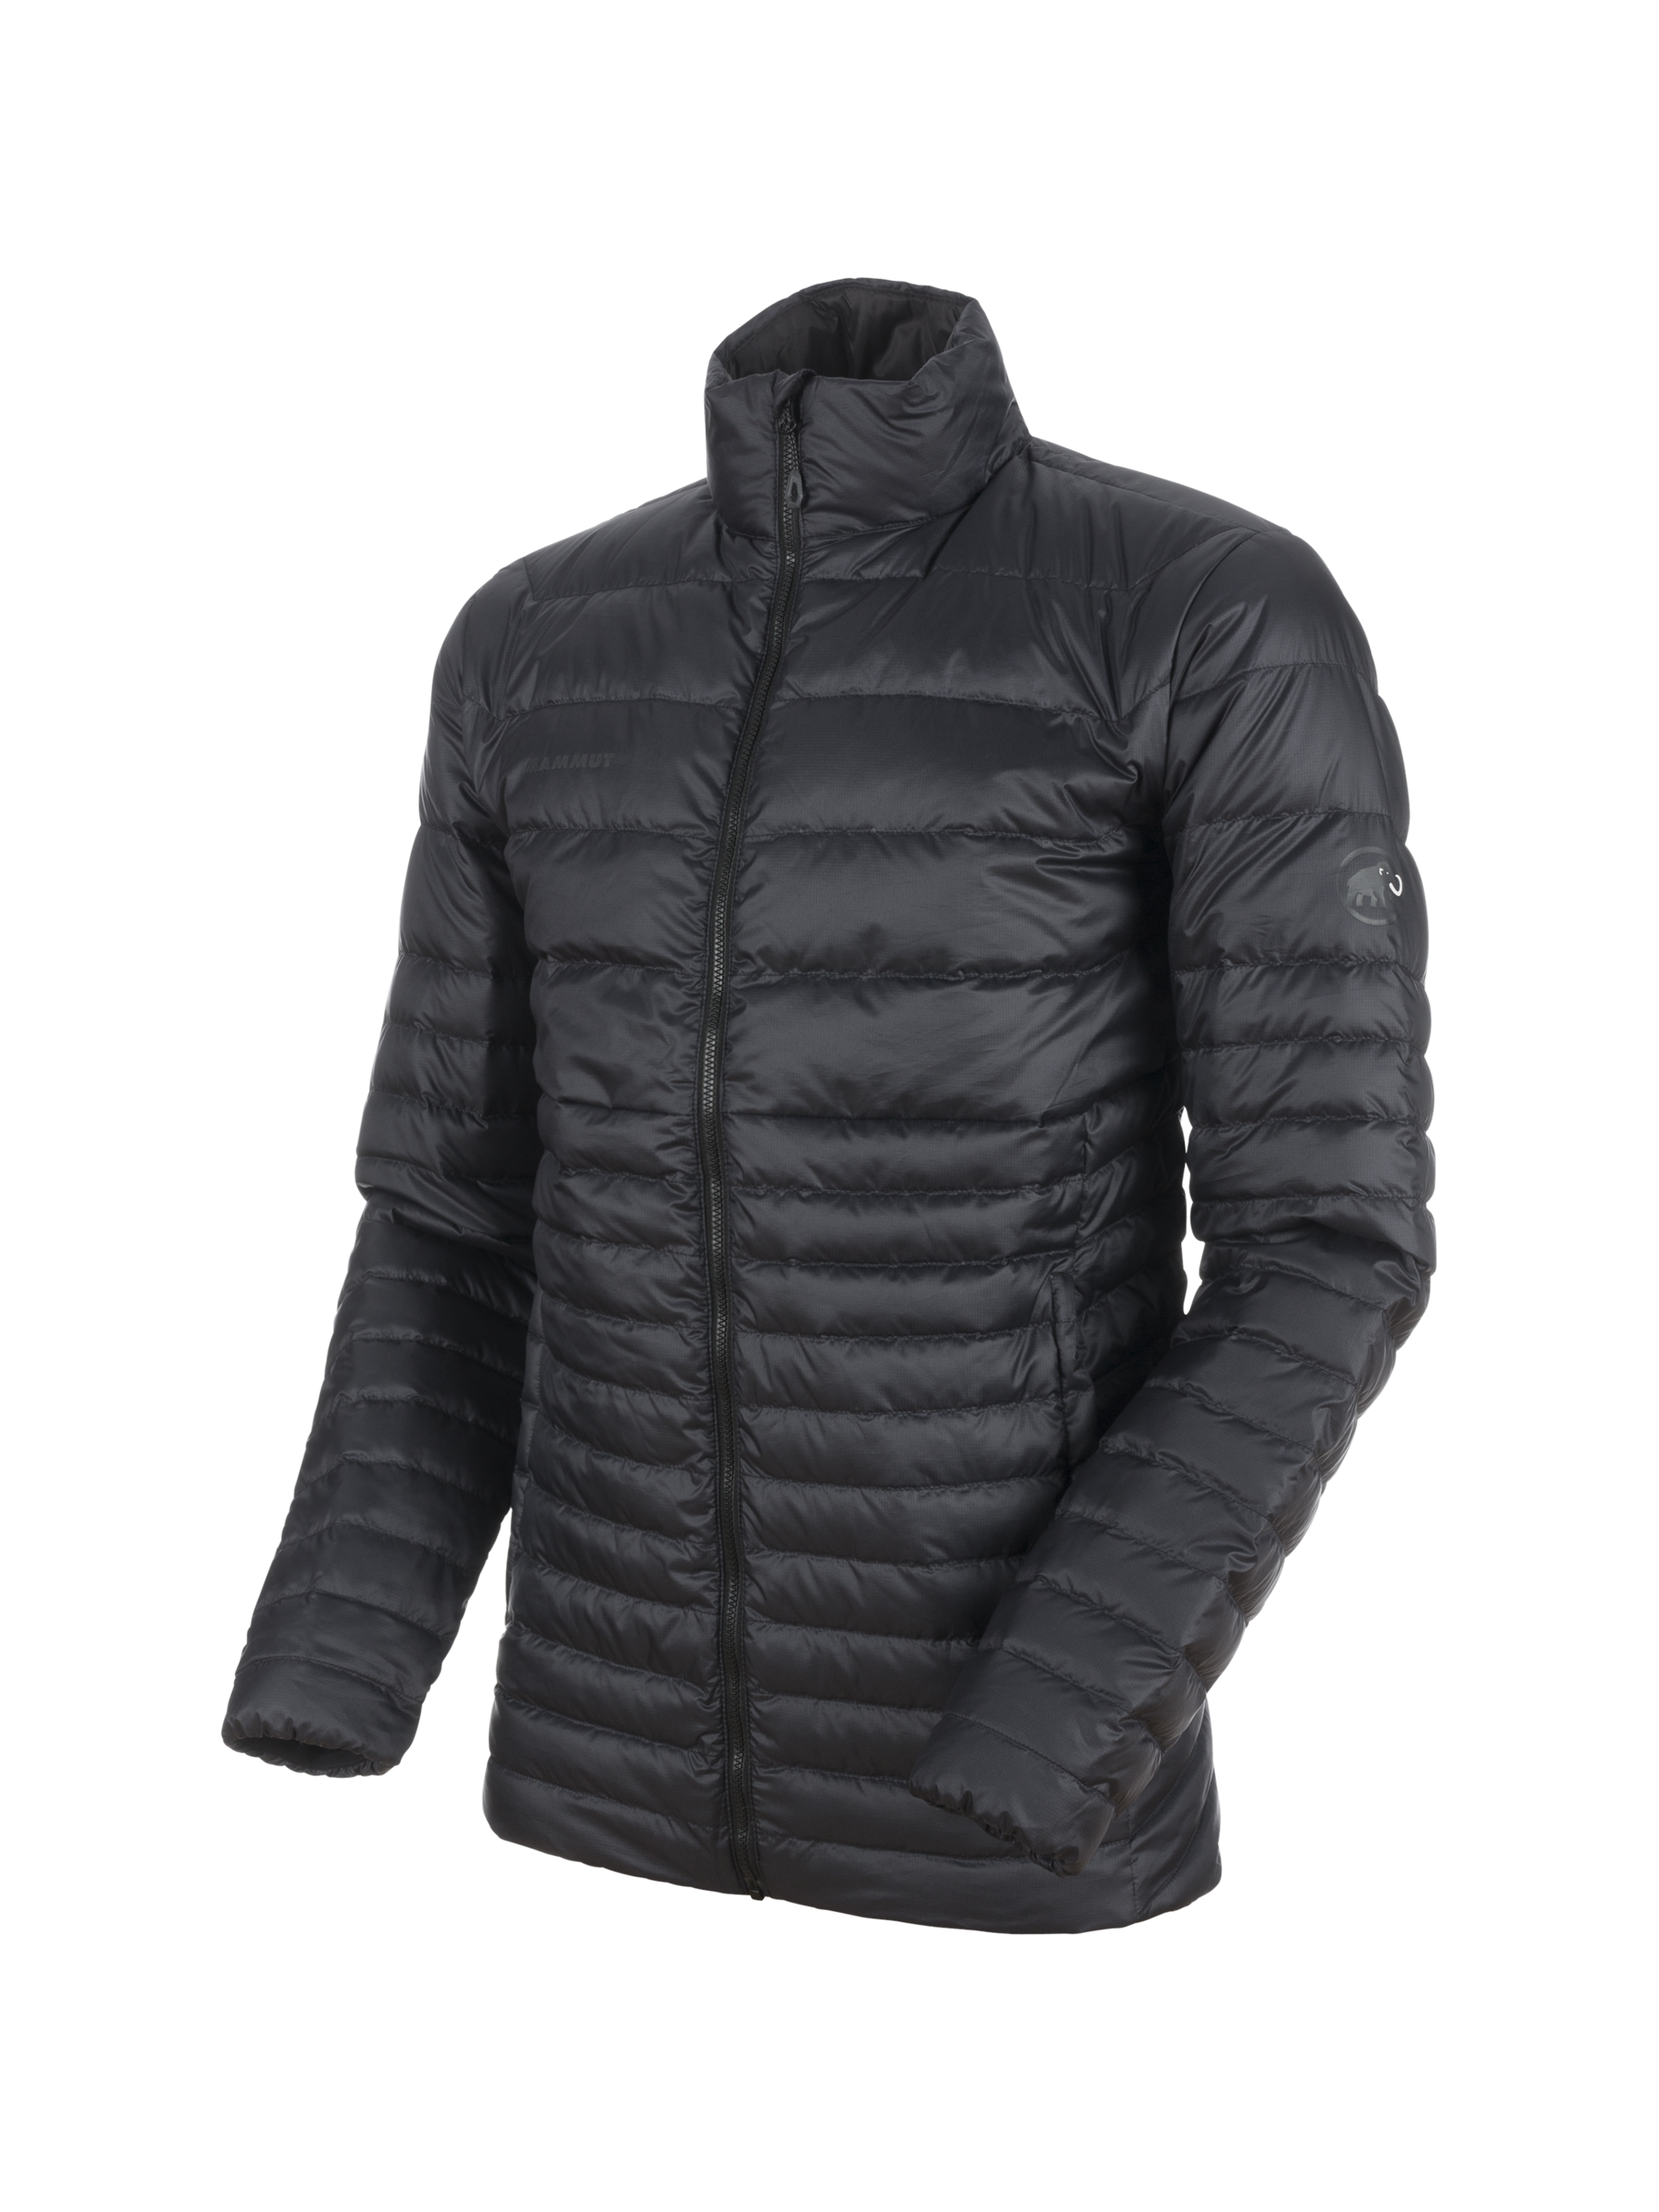 Convey IN Jacket Men product image